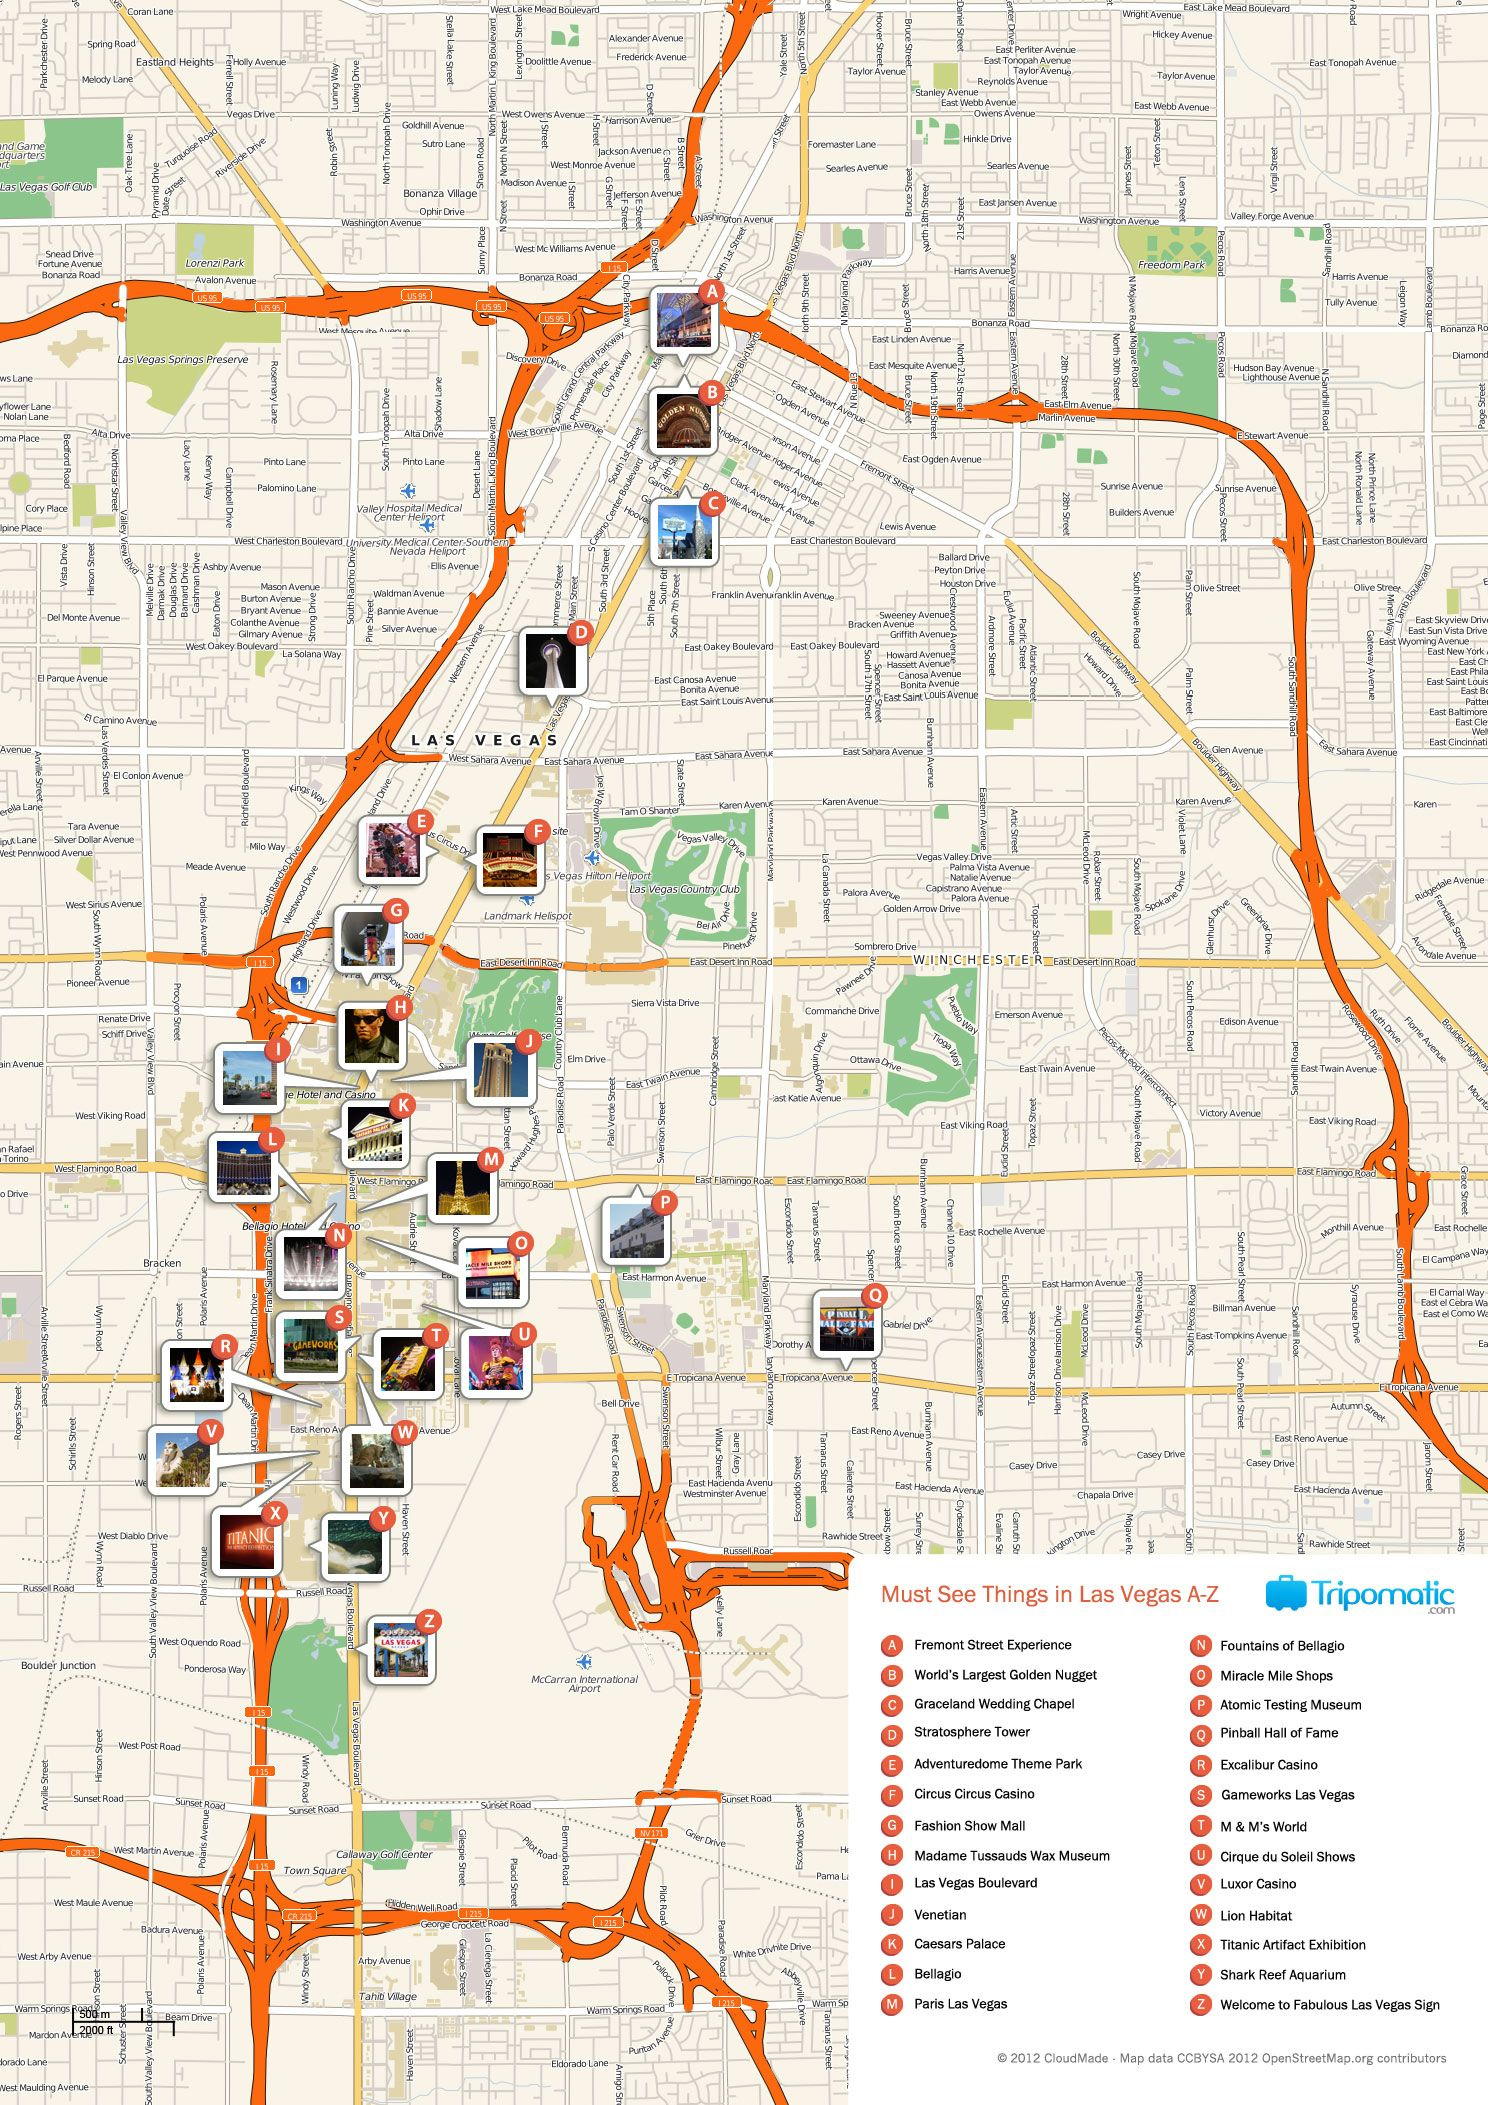 Free Printable Map Of Las Vegas Attractions. | Free Tourist Maps - Printable Street Maps Free